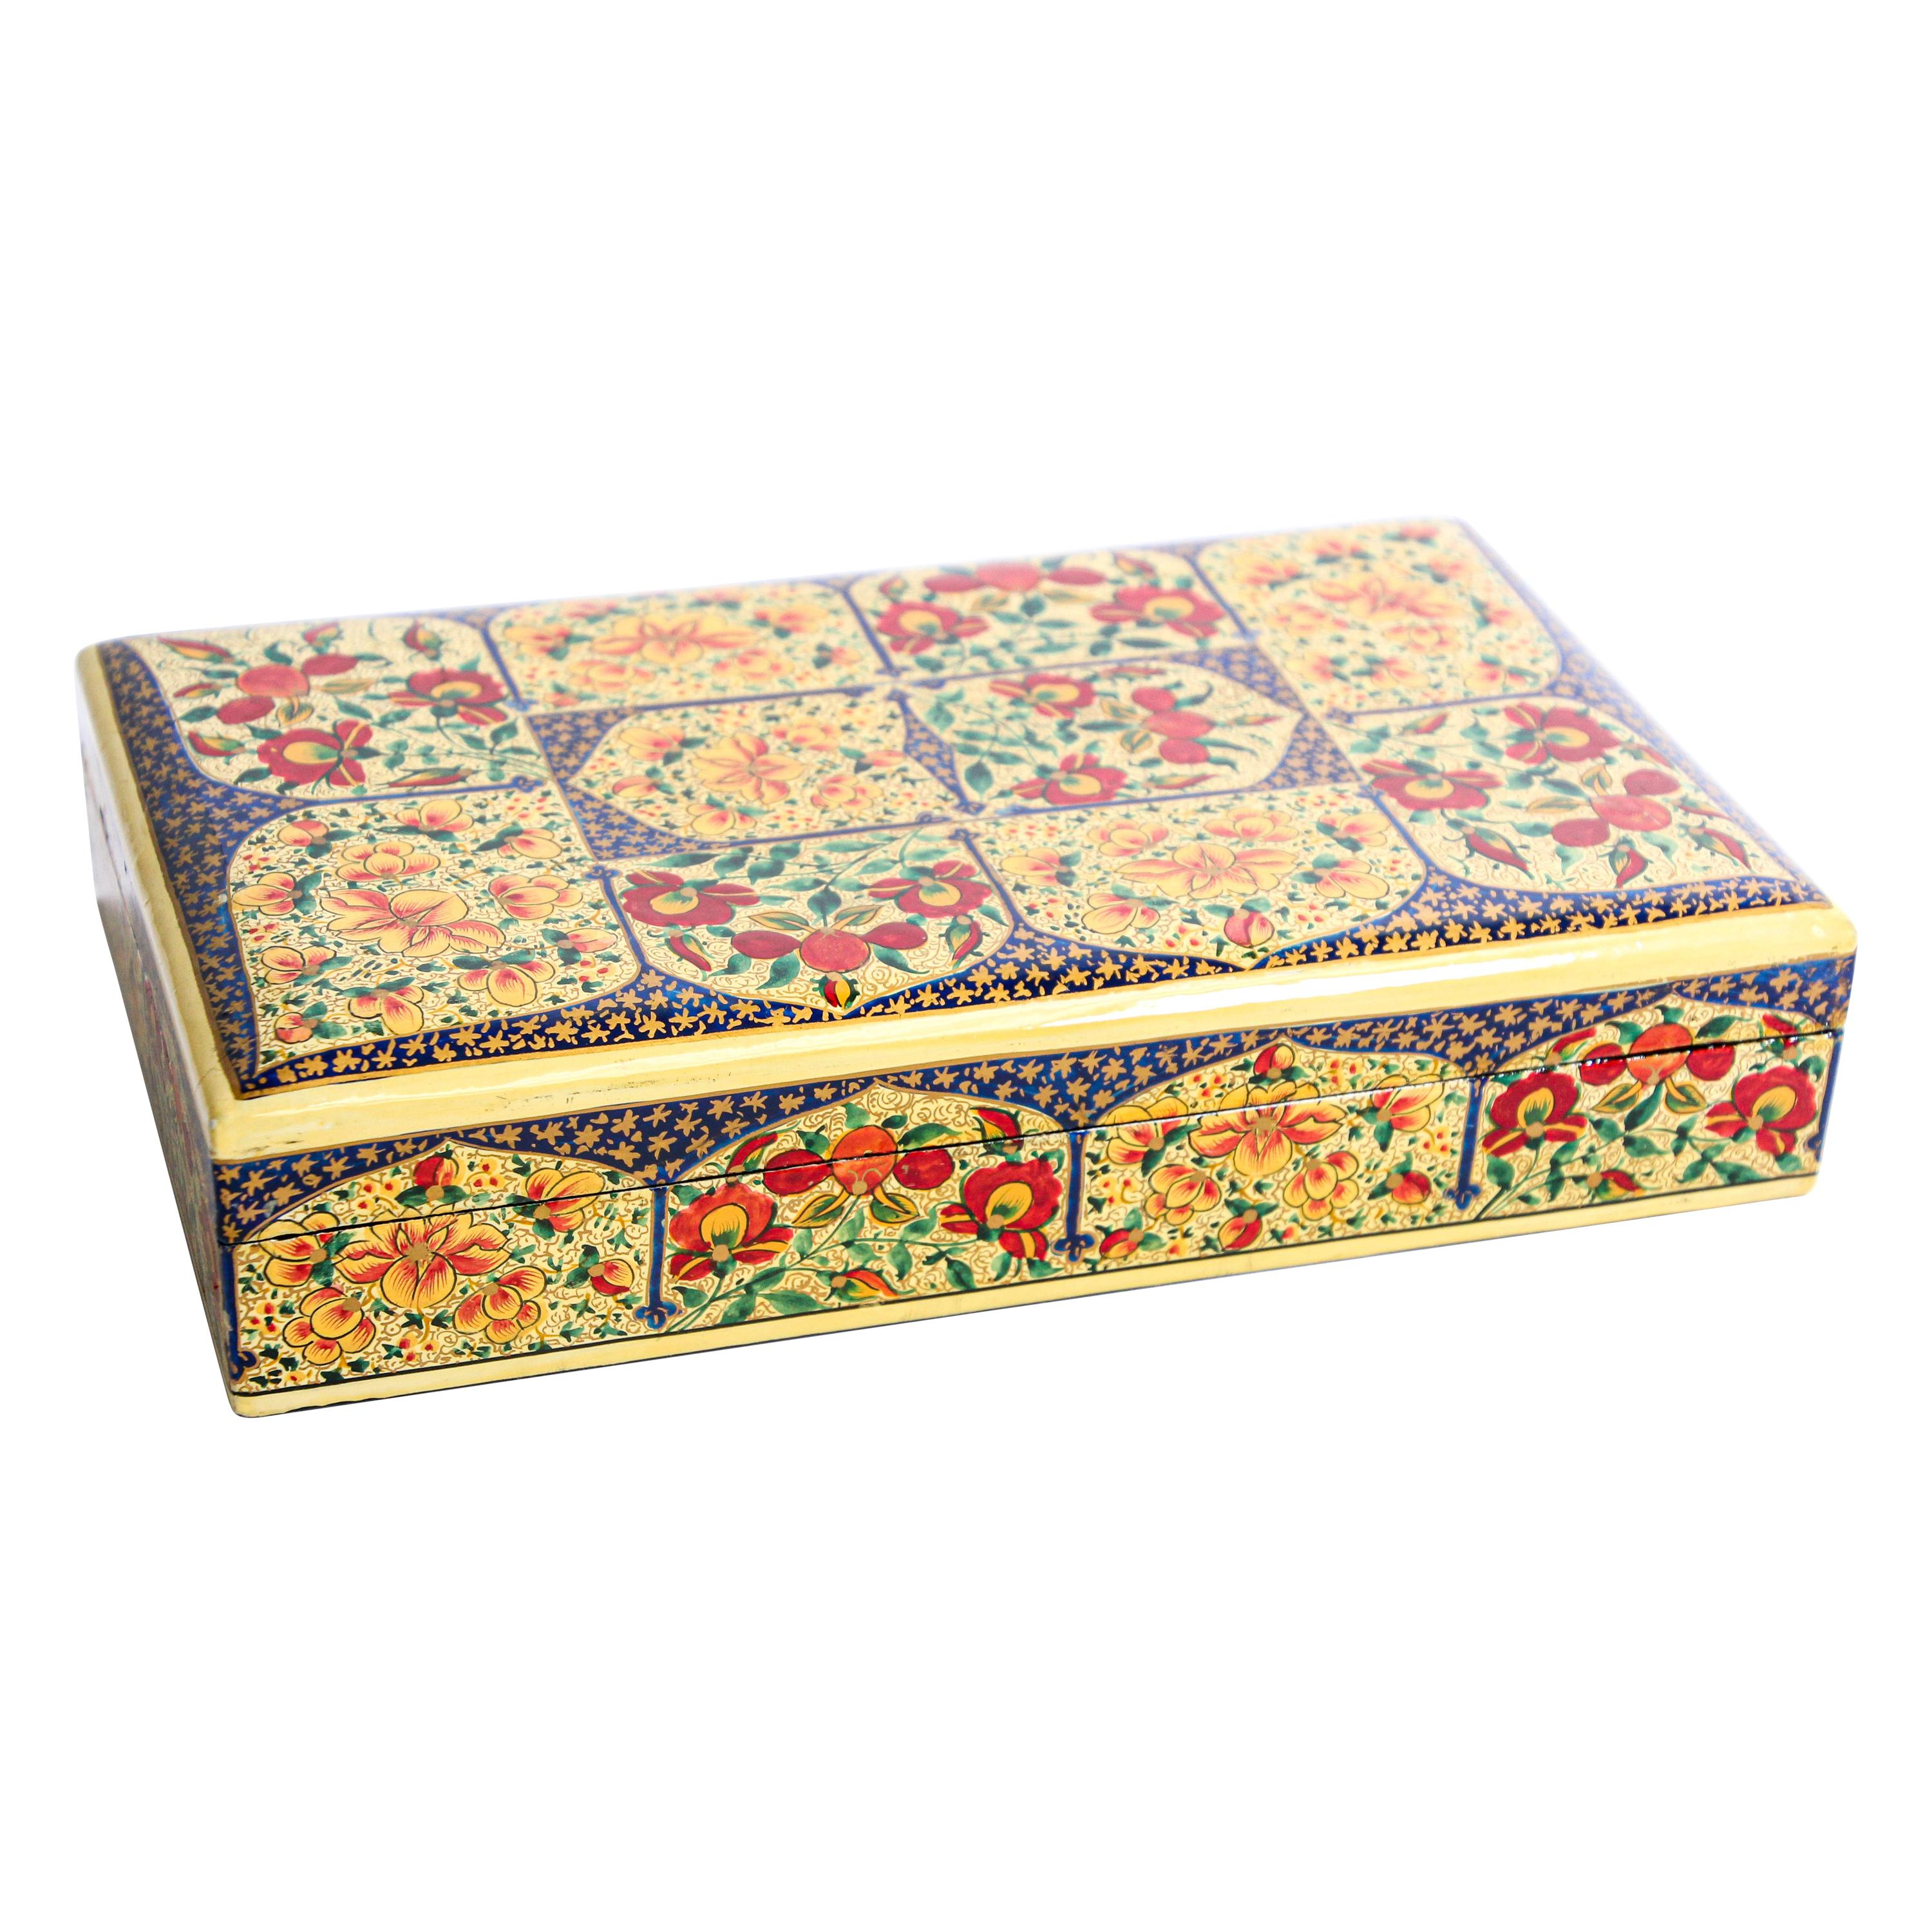 Hand Painted Rajasthani Lacquer Decorative Box